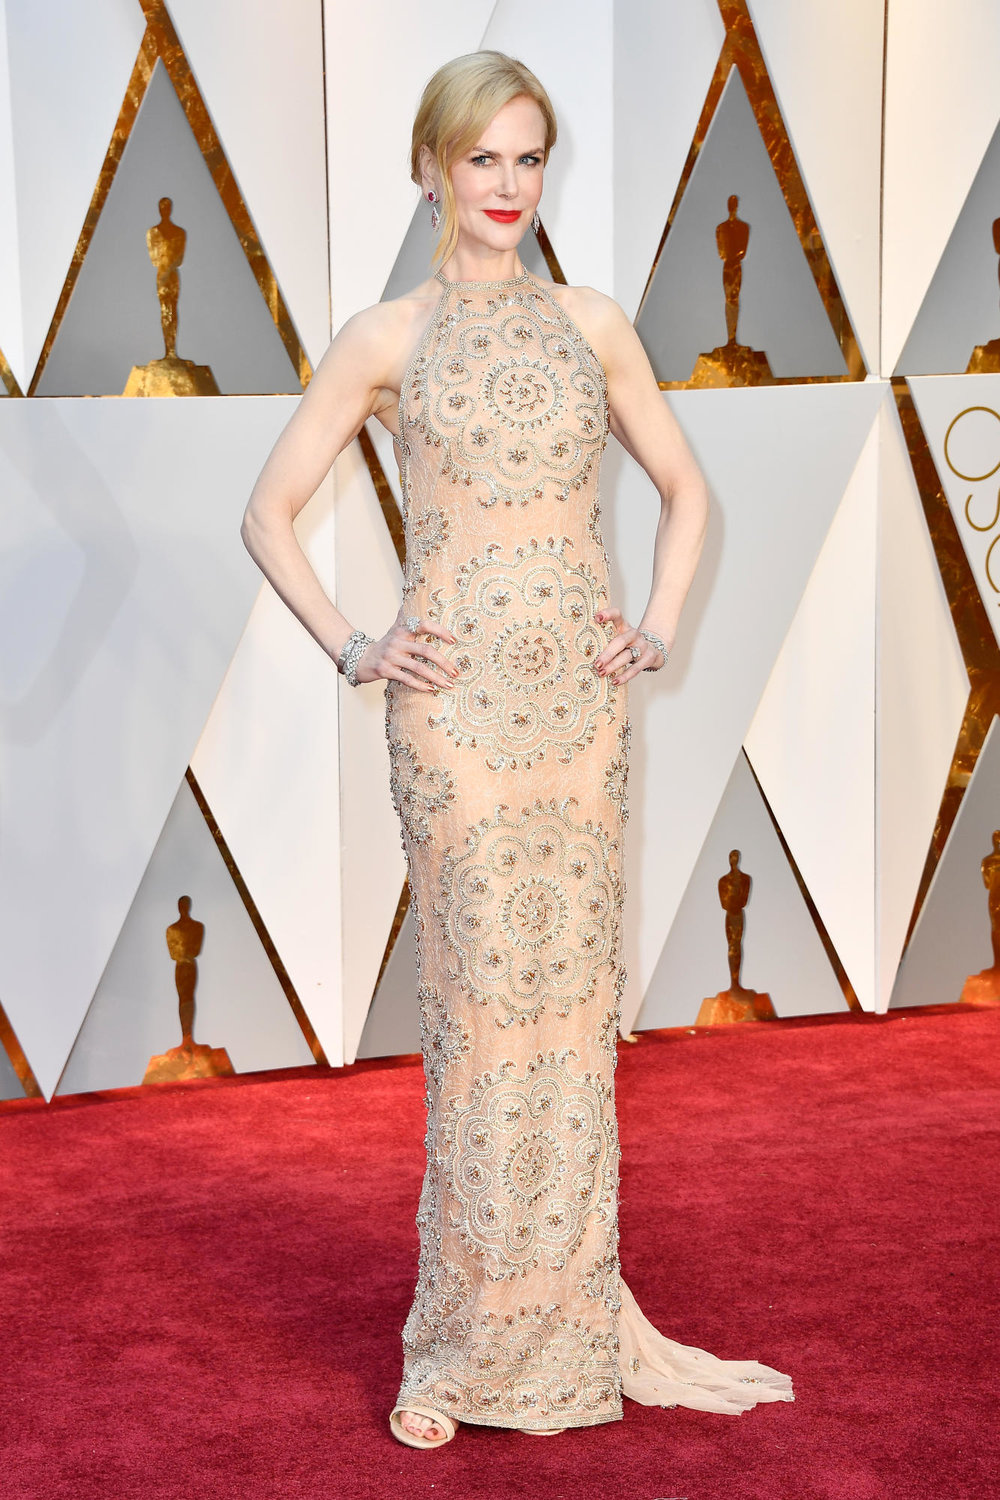 Nicole Kidman in Armani gown (Frazer Harrison/Getty images)